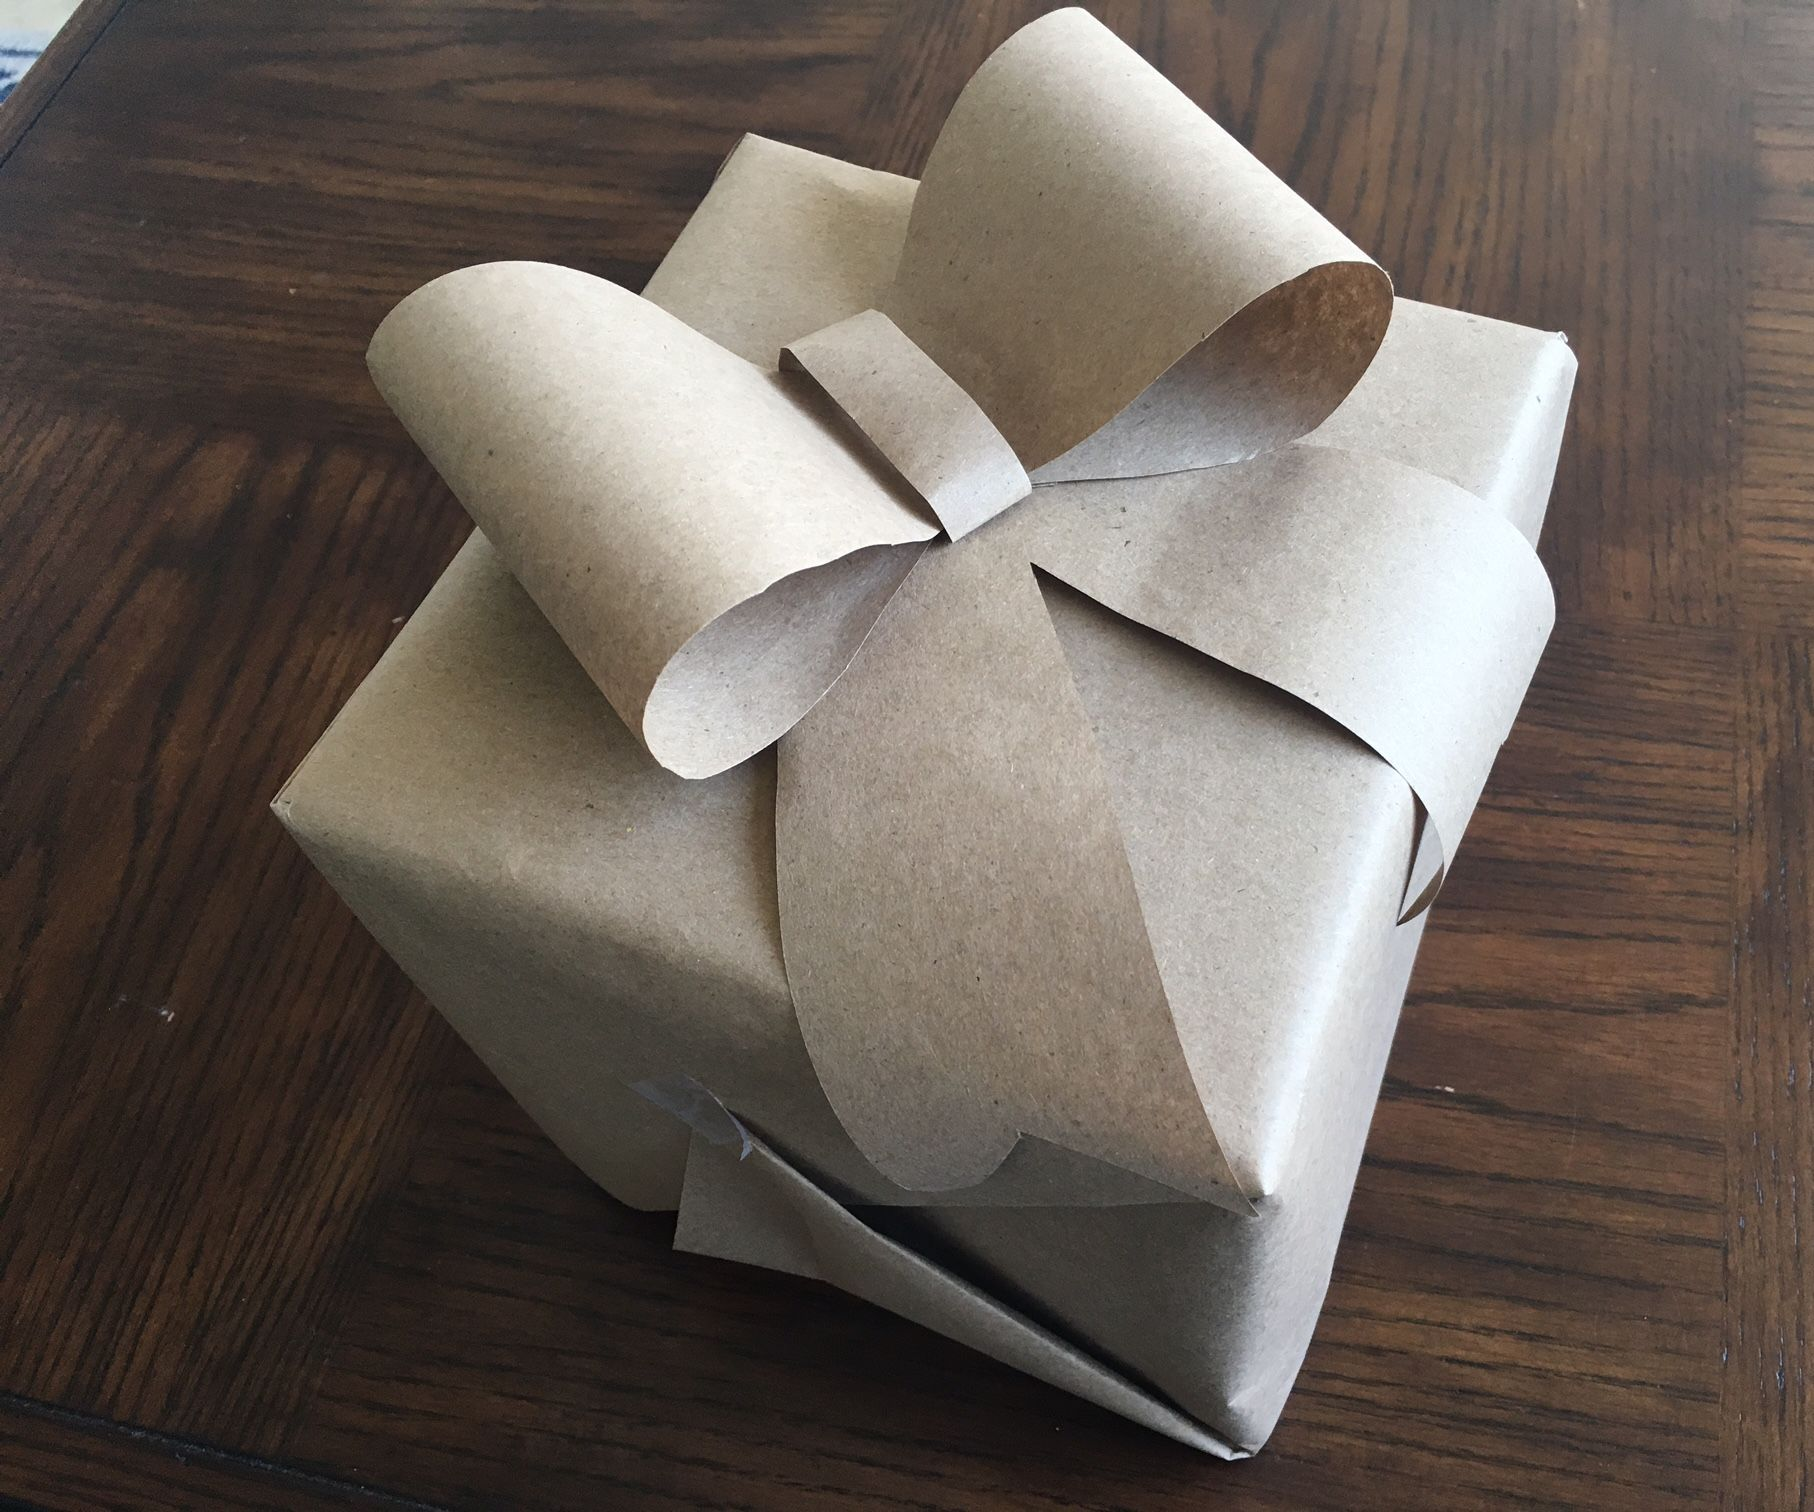 Wrapping Gifts in Nesting Boxes